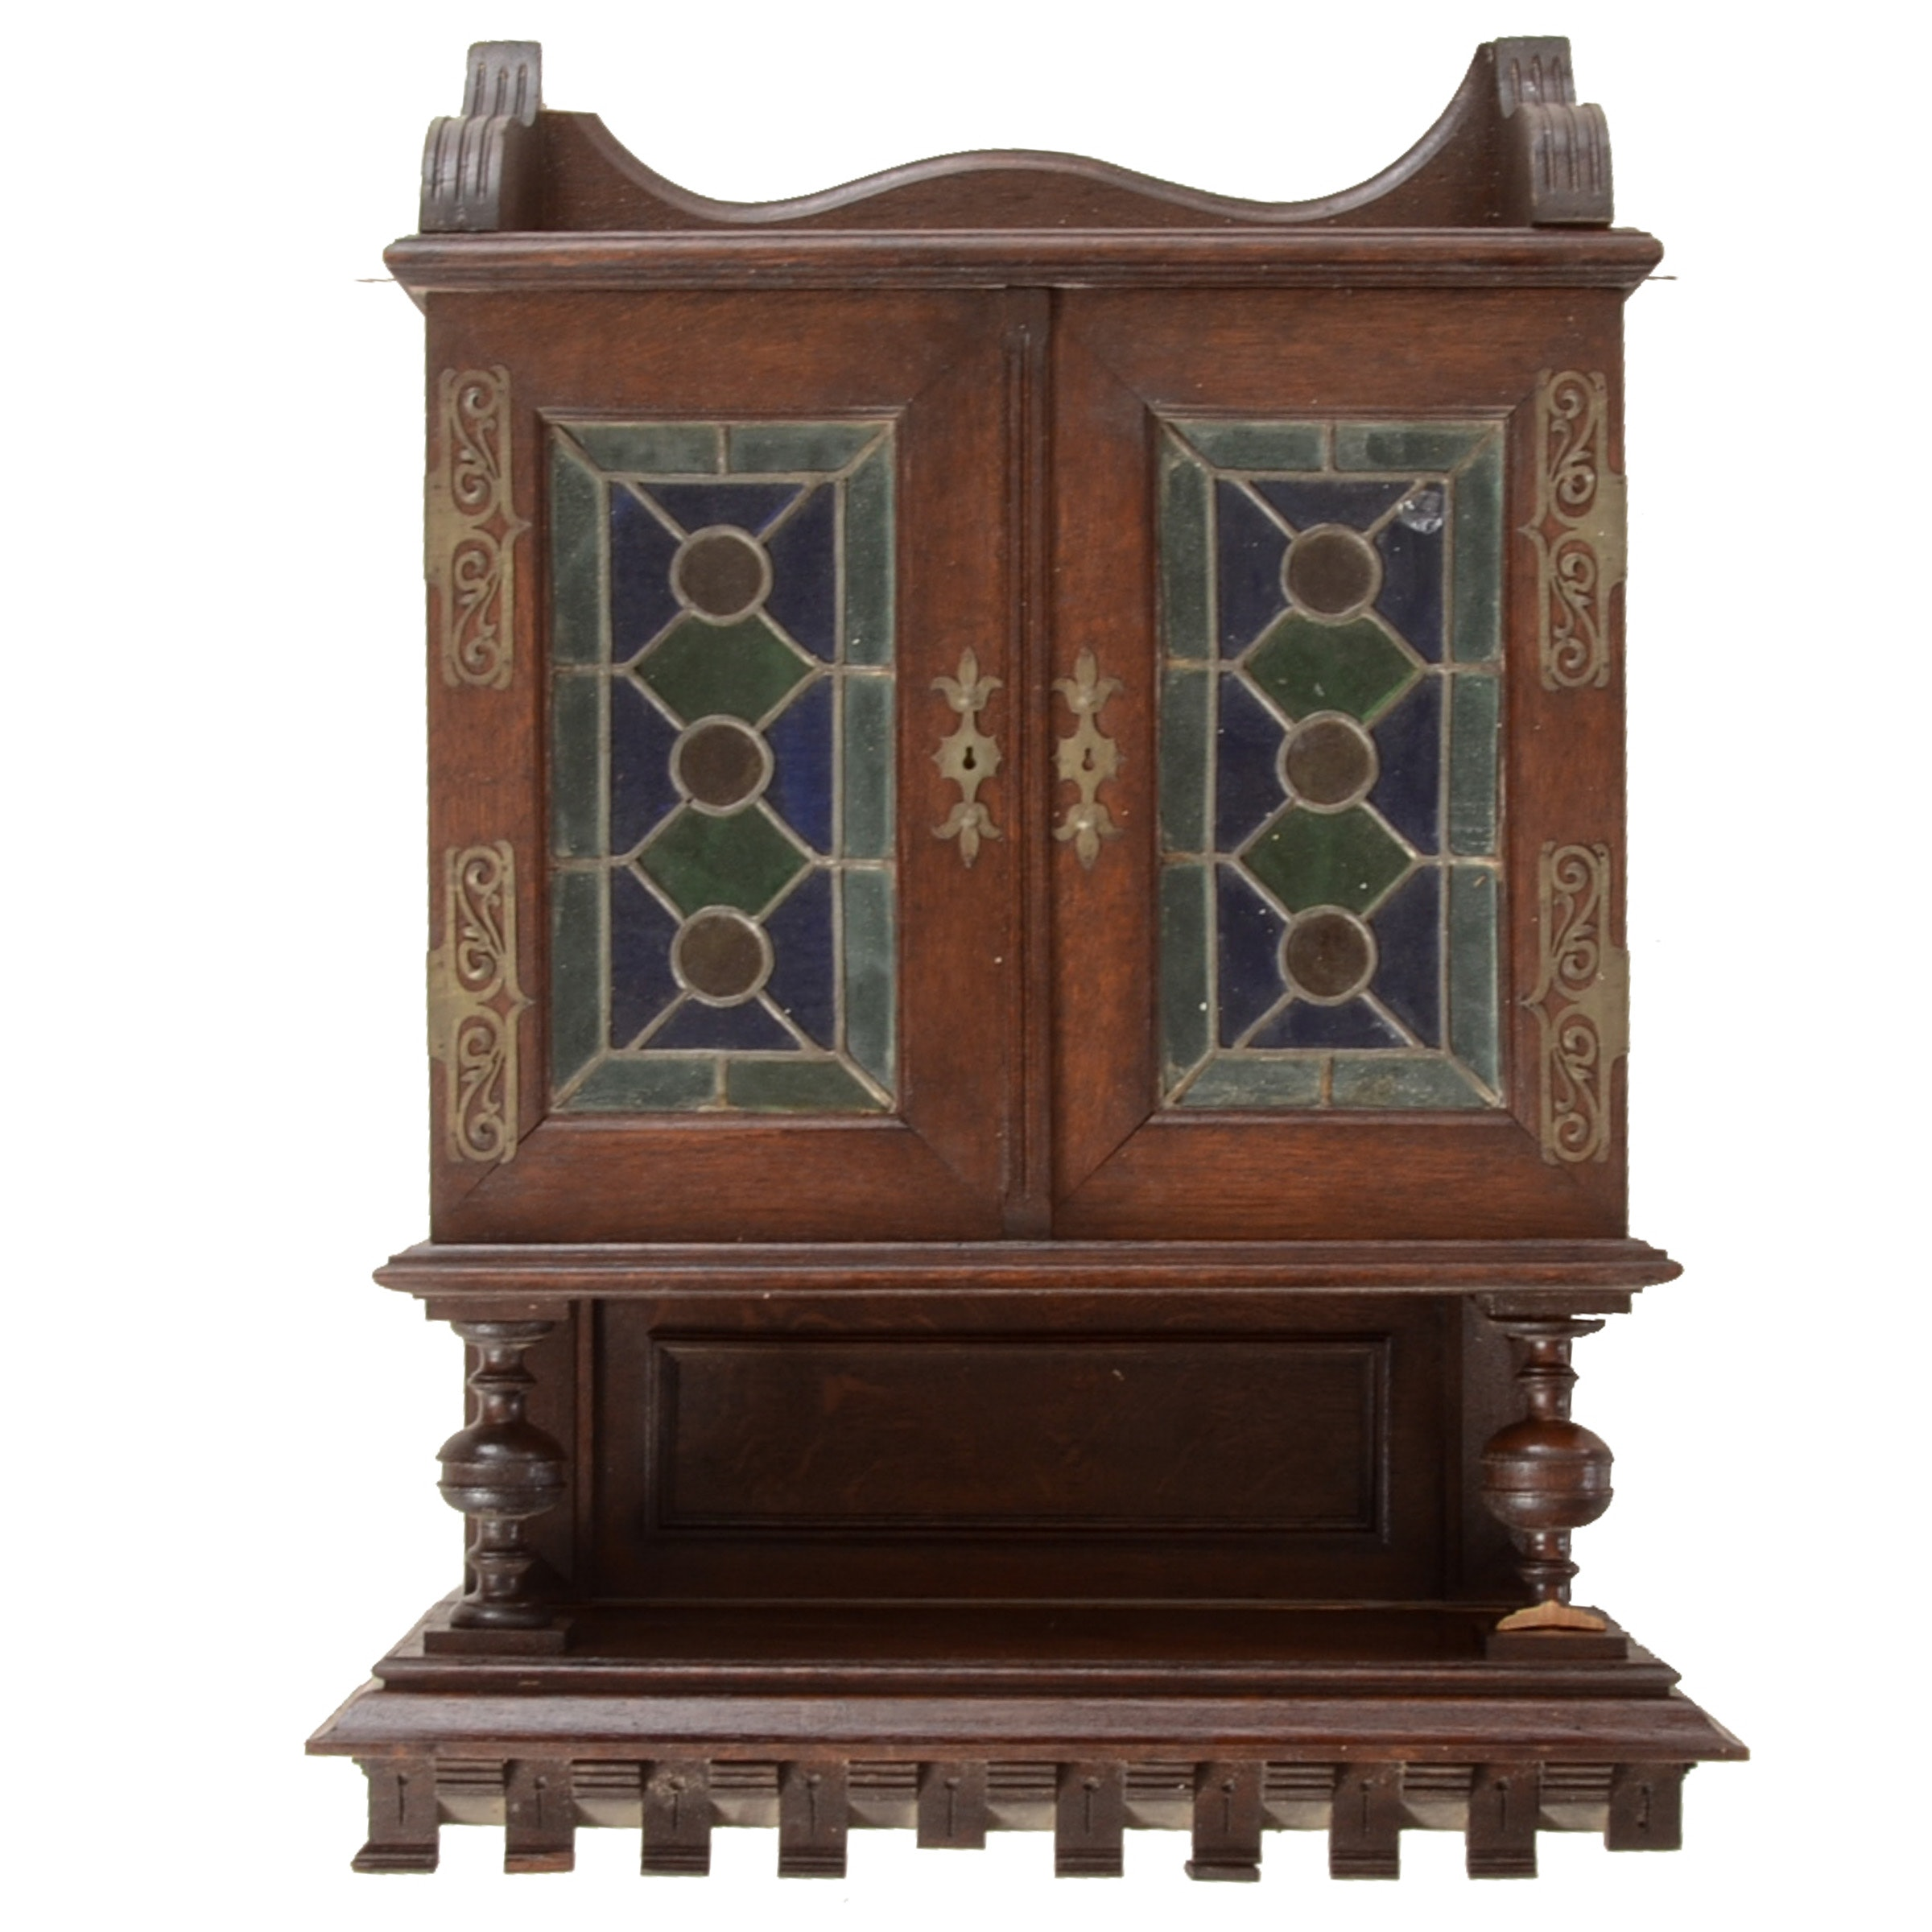 Antique English Shelf and Cabinet with Stained Glass Doors